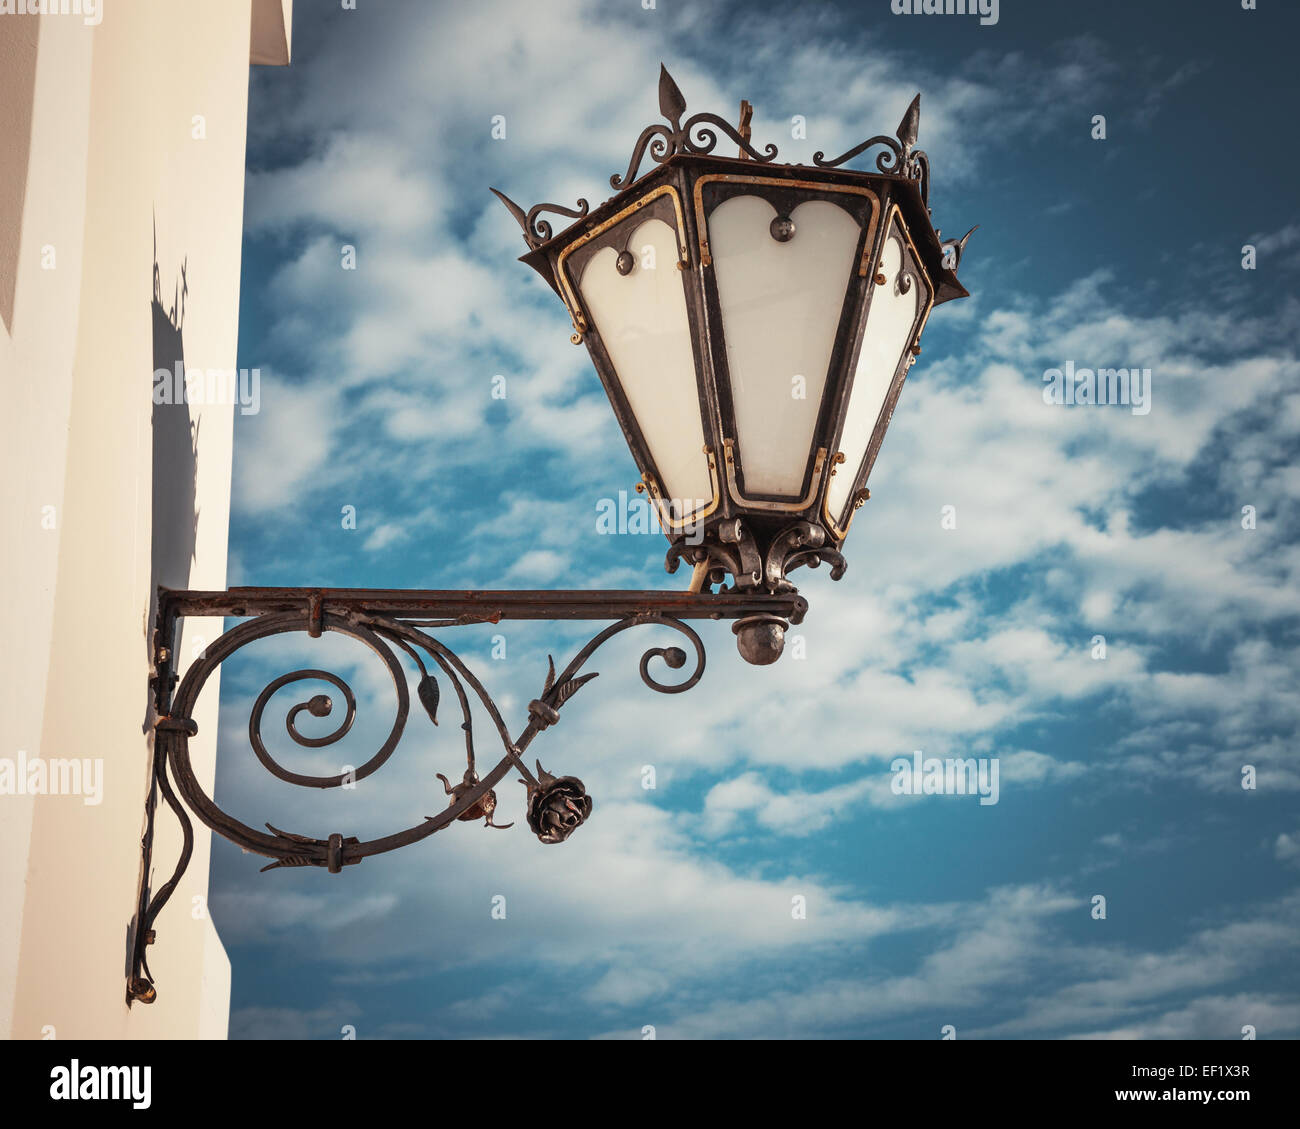 decorative  wall street lamp on blue sky background - Stock Image